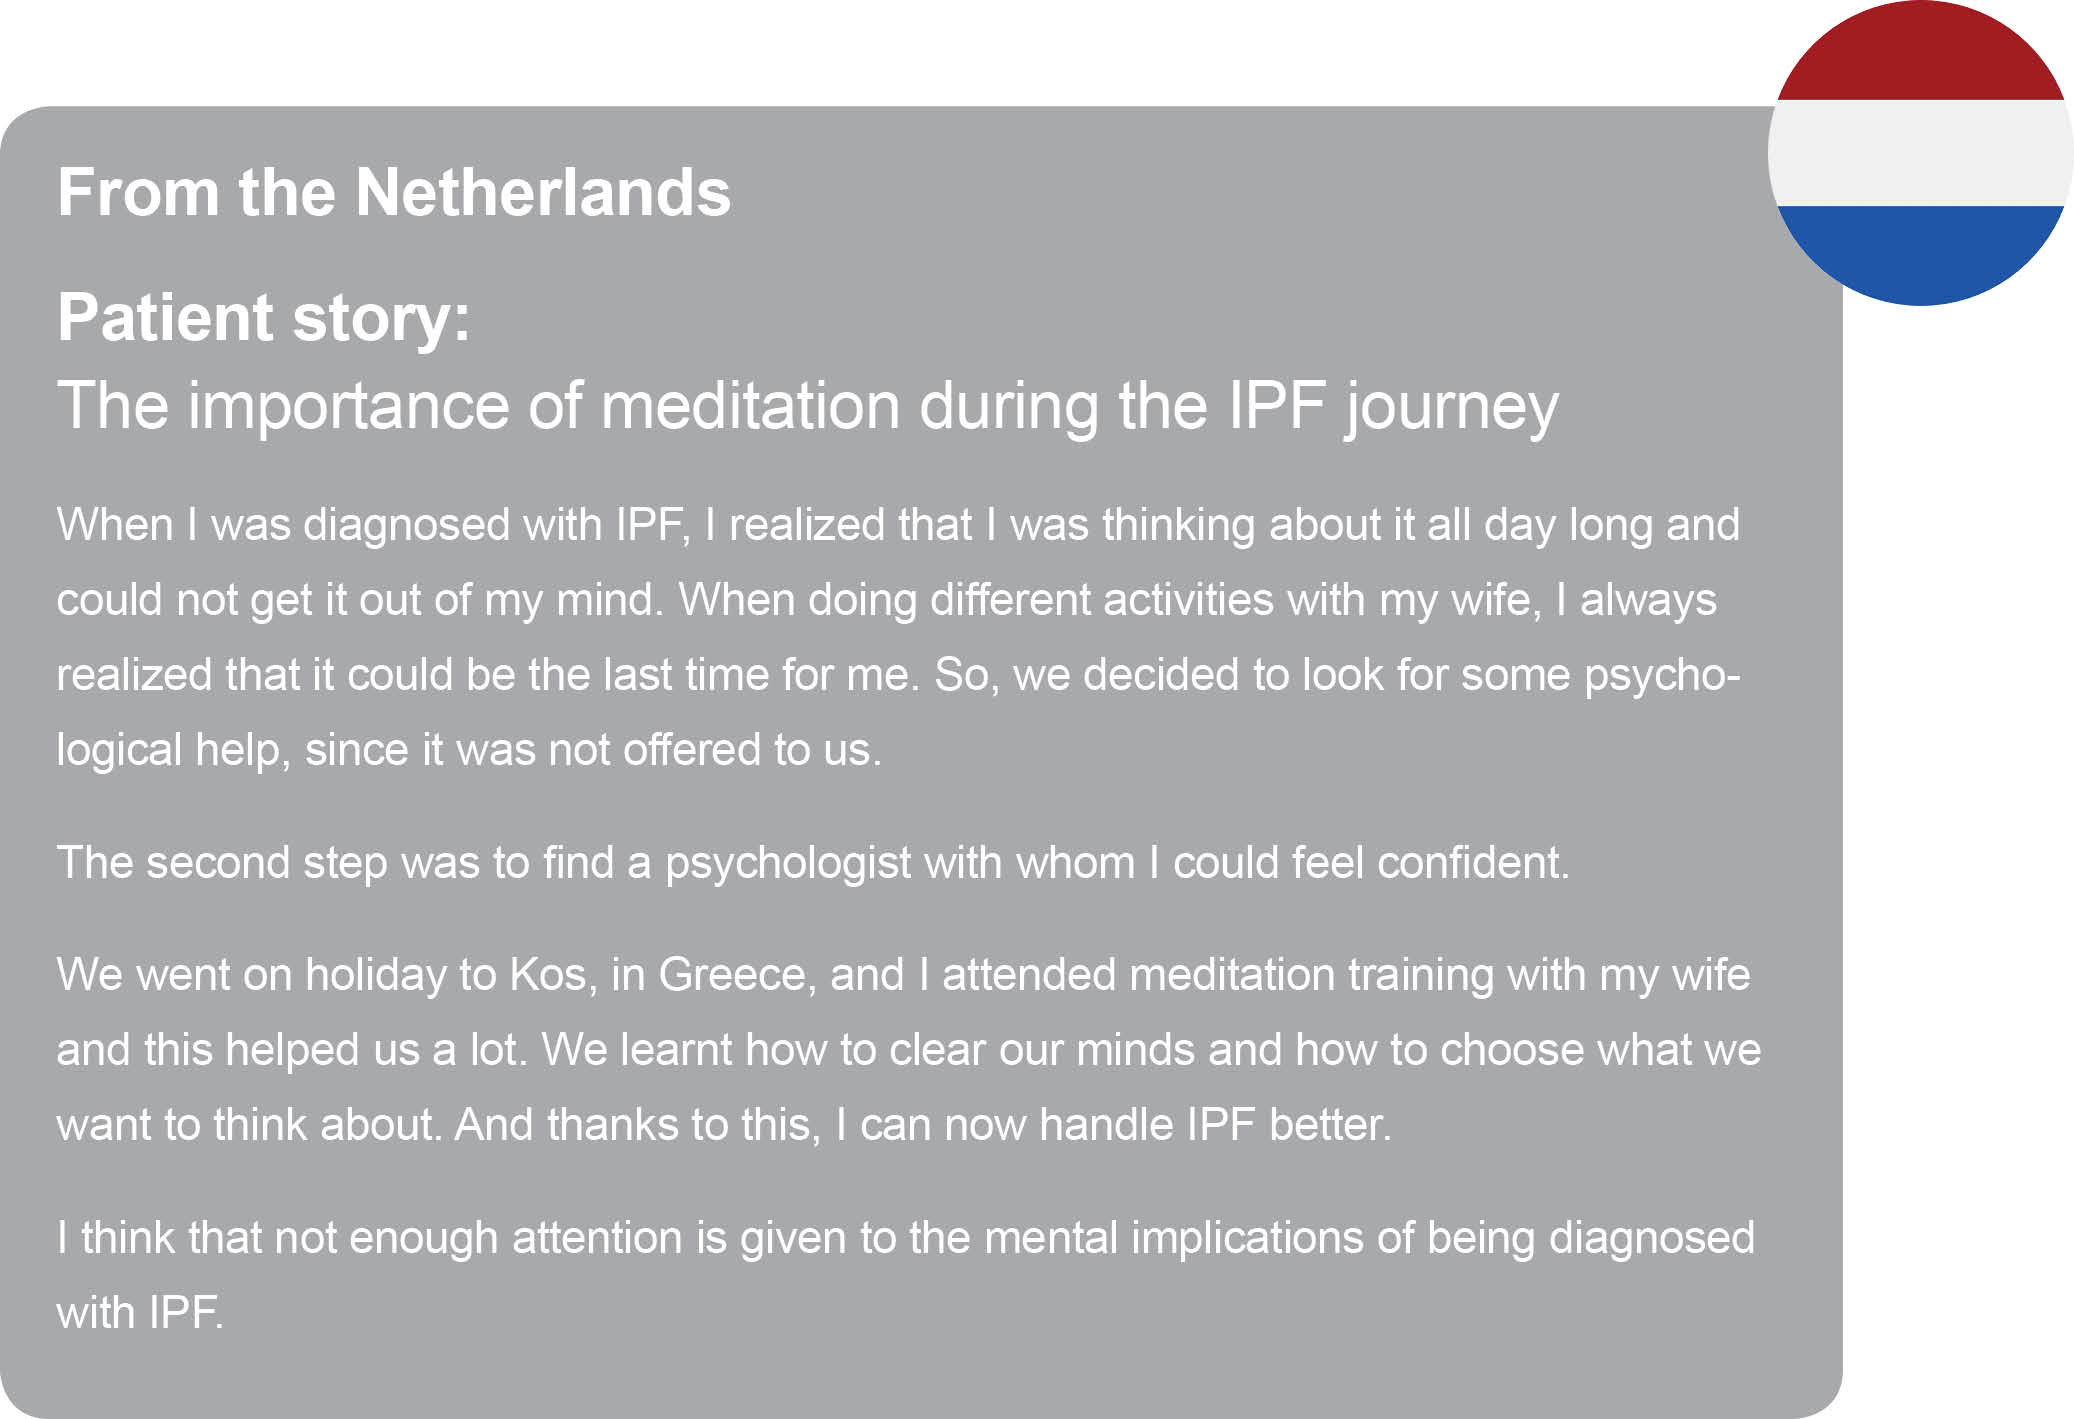 The importance of meditation during the IPF journey.jpg